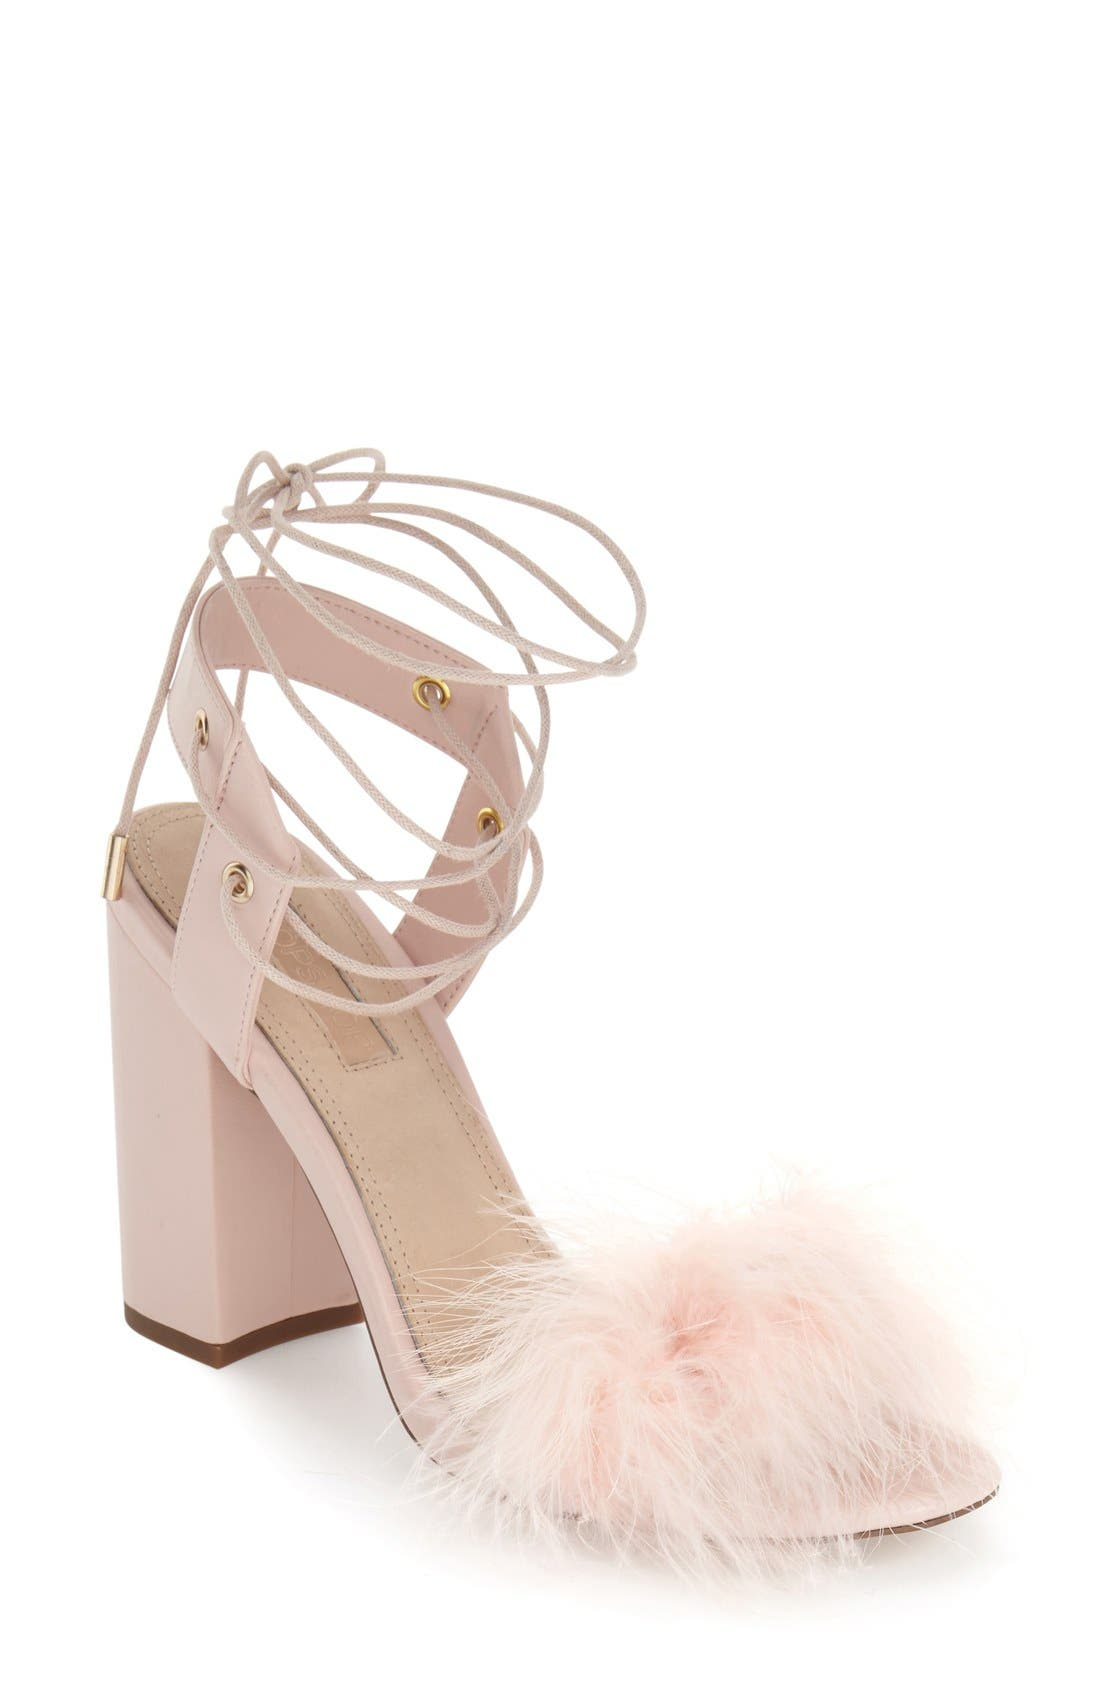 Marabou Feather Lace-Up Sandal,                             Main thumbnail 1, color,                             Nude